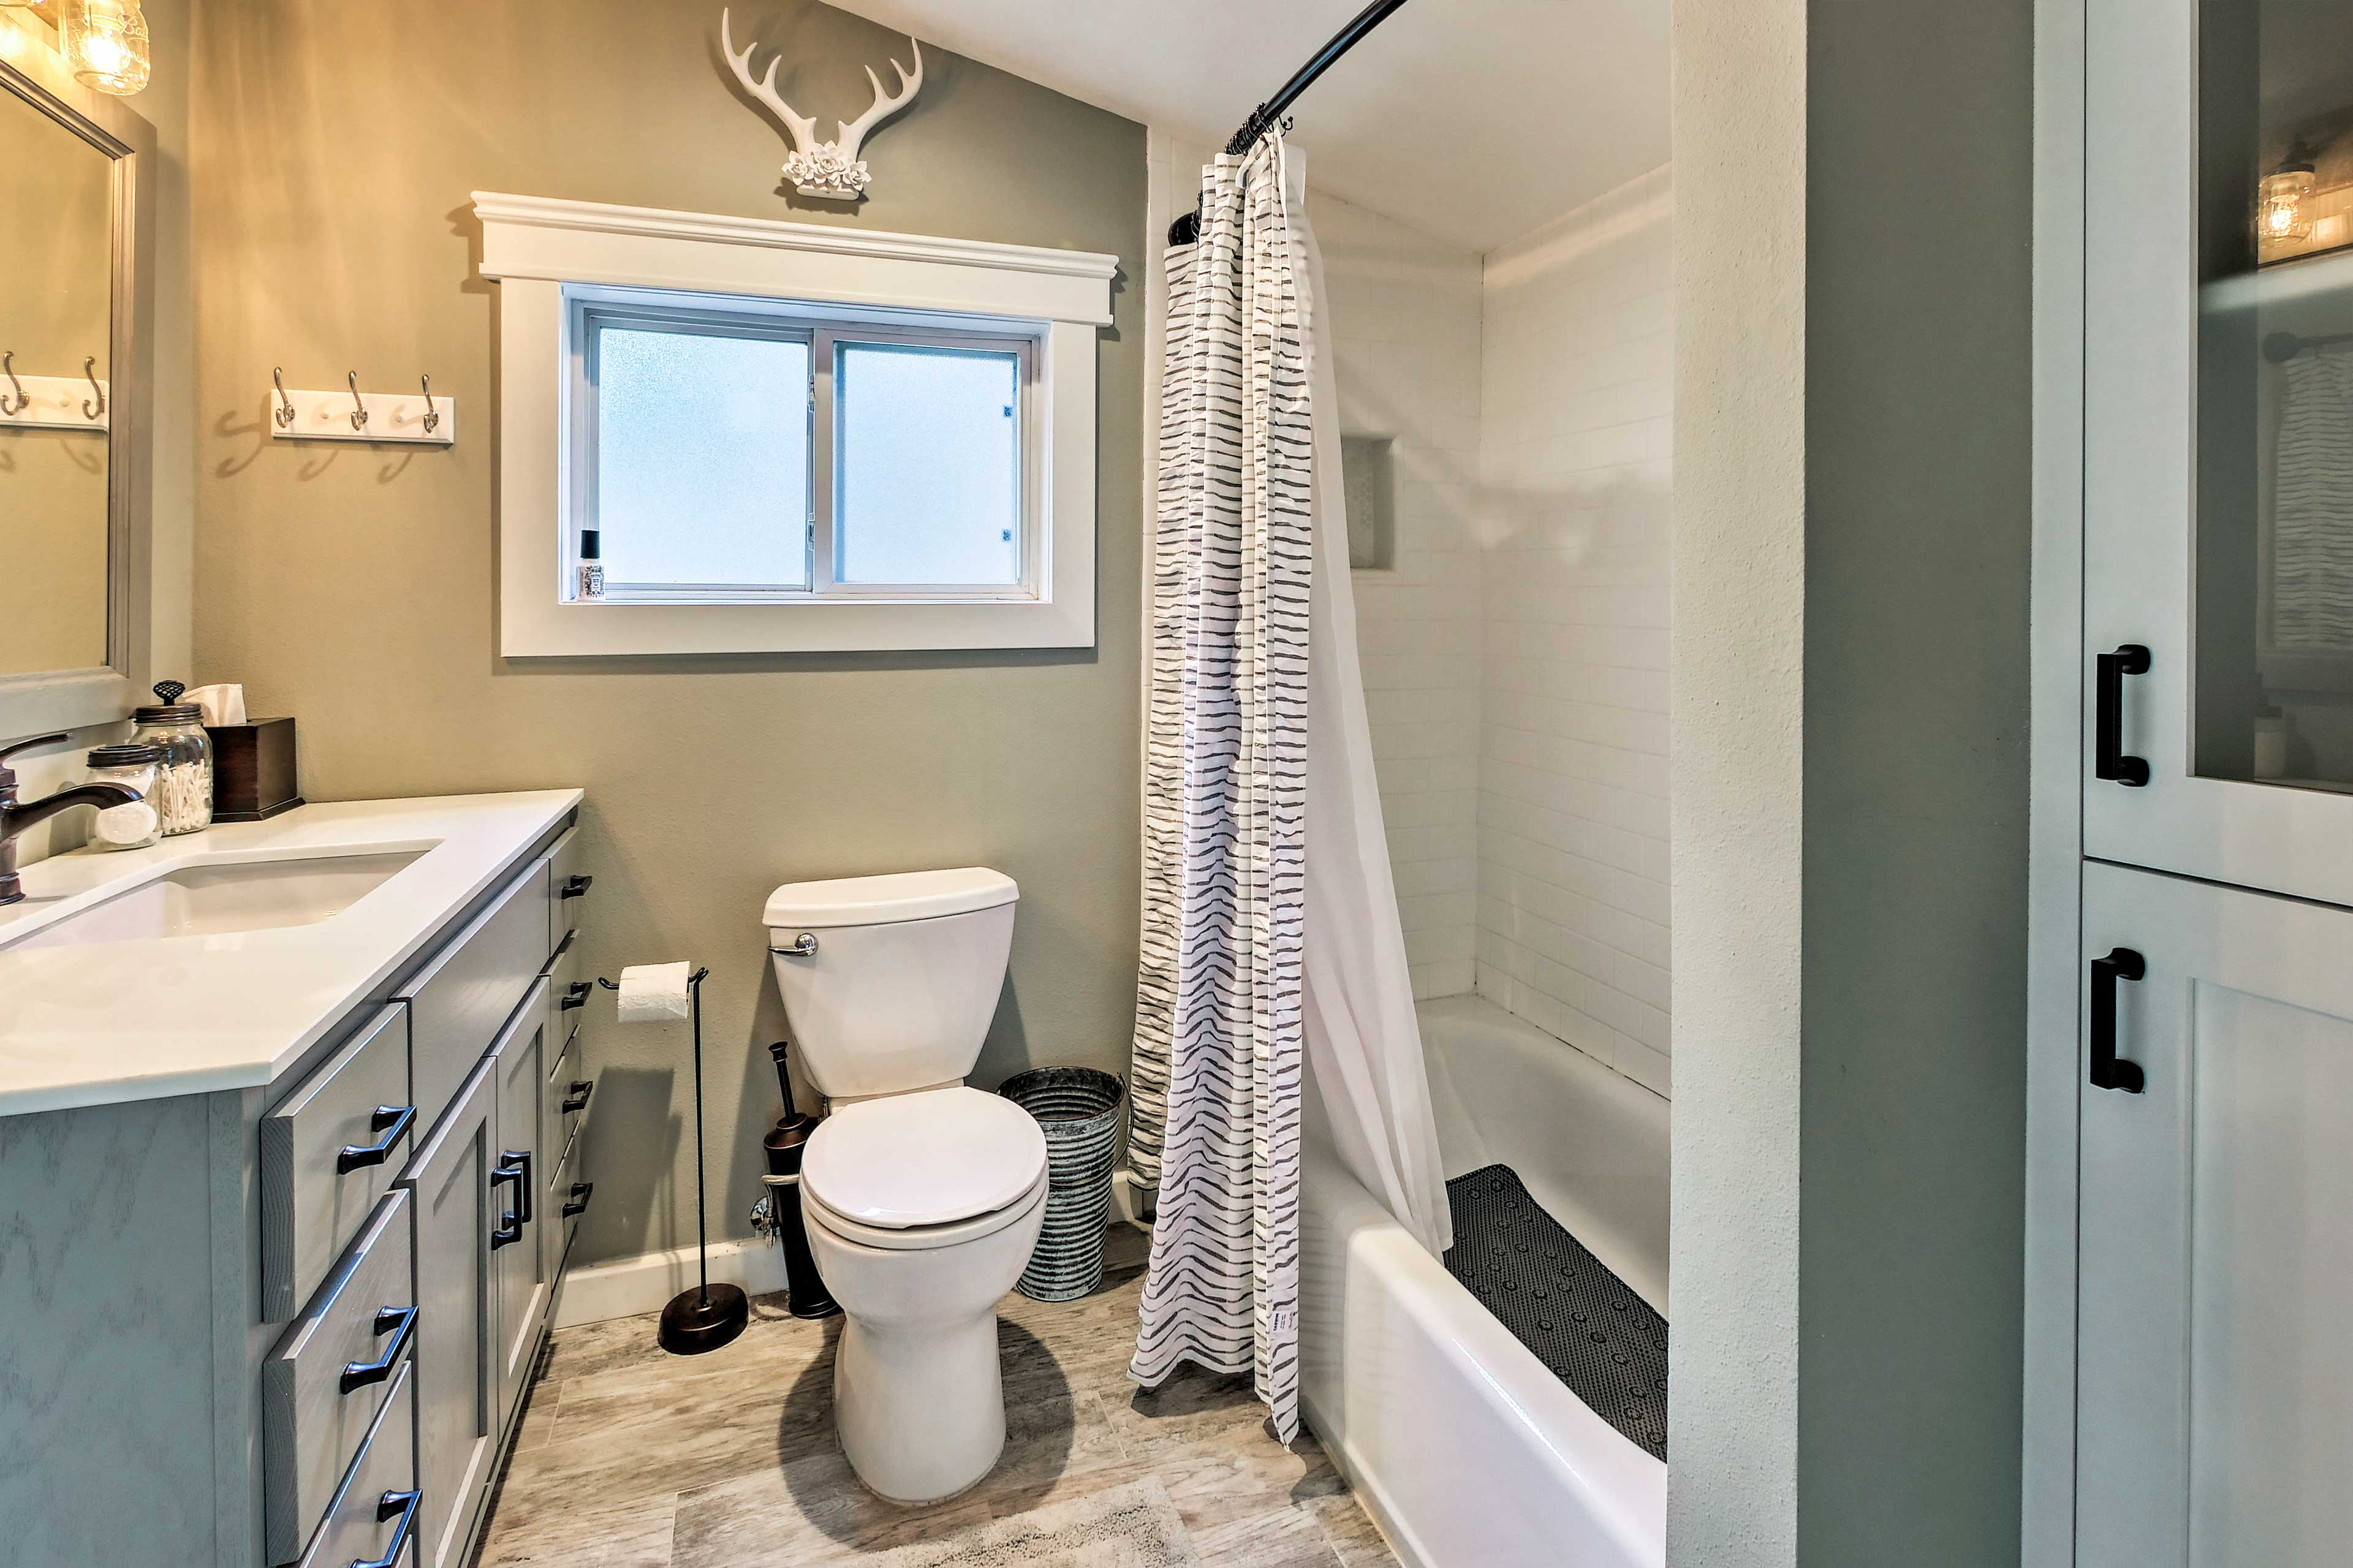 The chic style continues in the full bathroom.